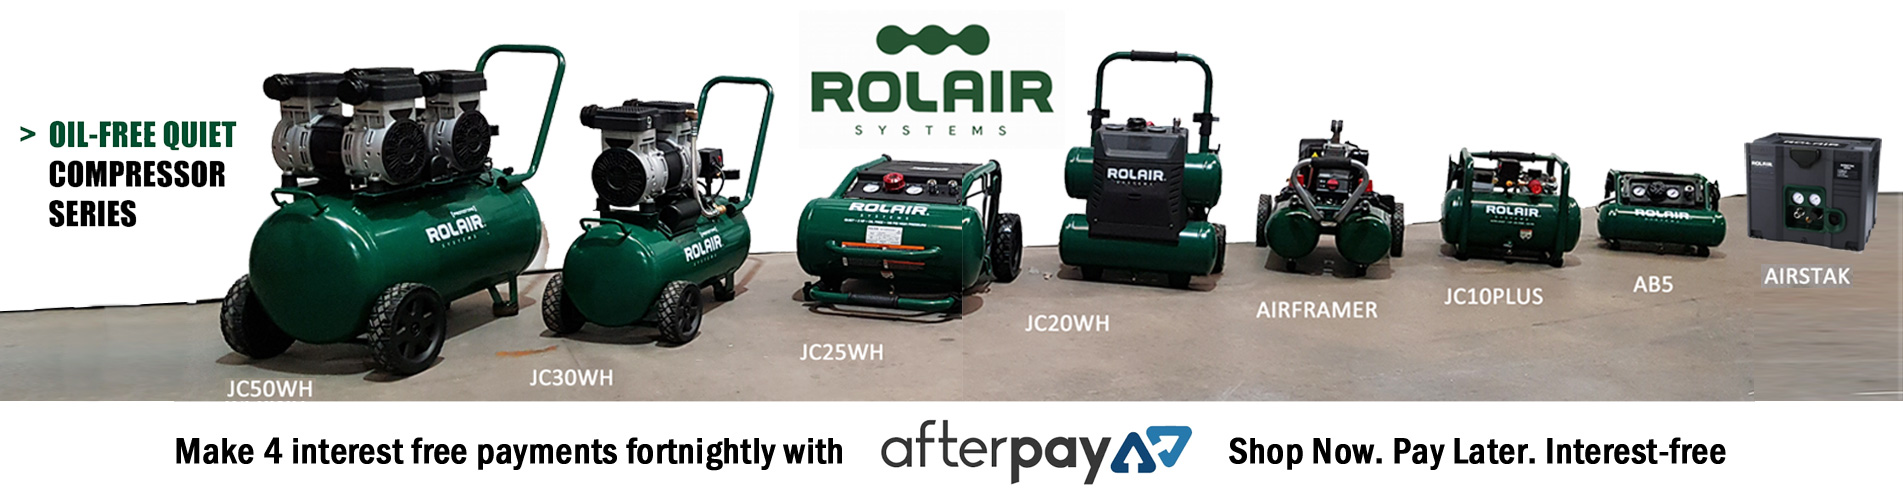 Rolair Quiet Oil Free Air Compressors - Audel Tools